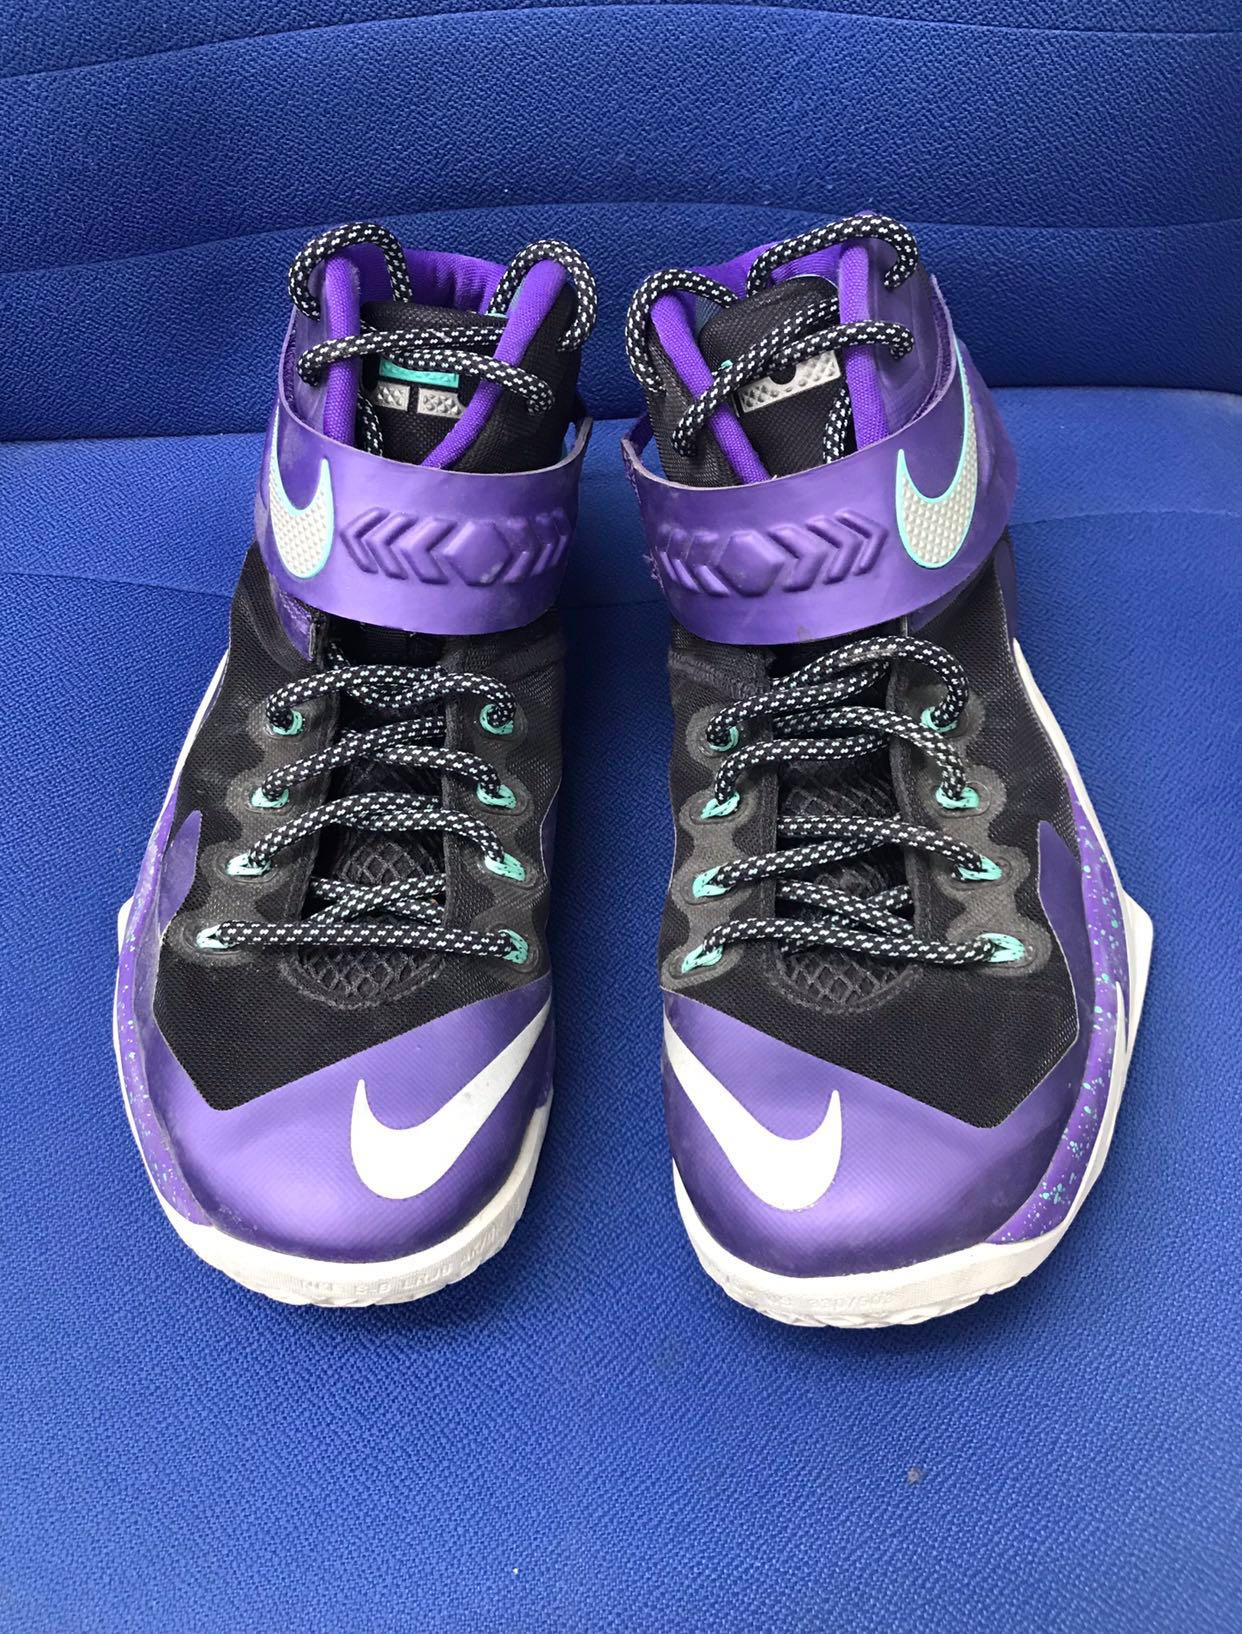 0864d8552be Yearend Sale! Lebron 8 Soldier